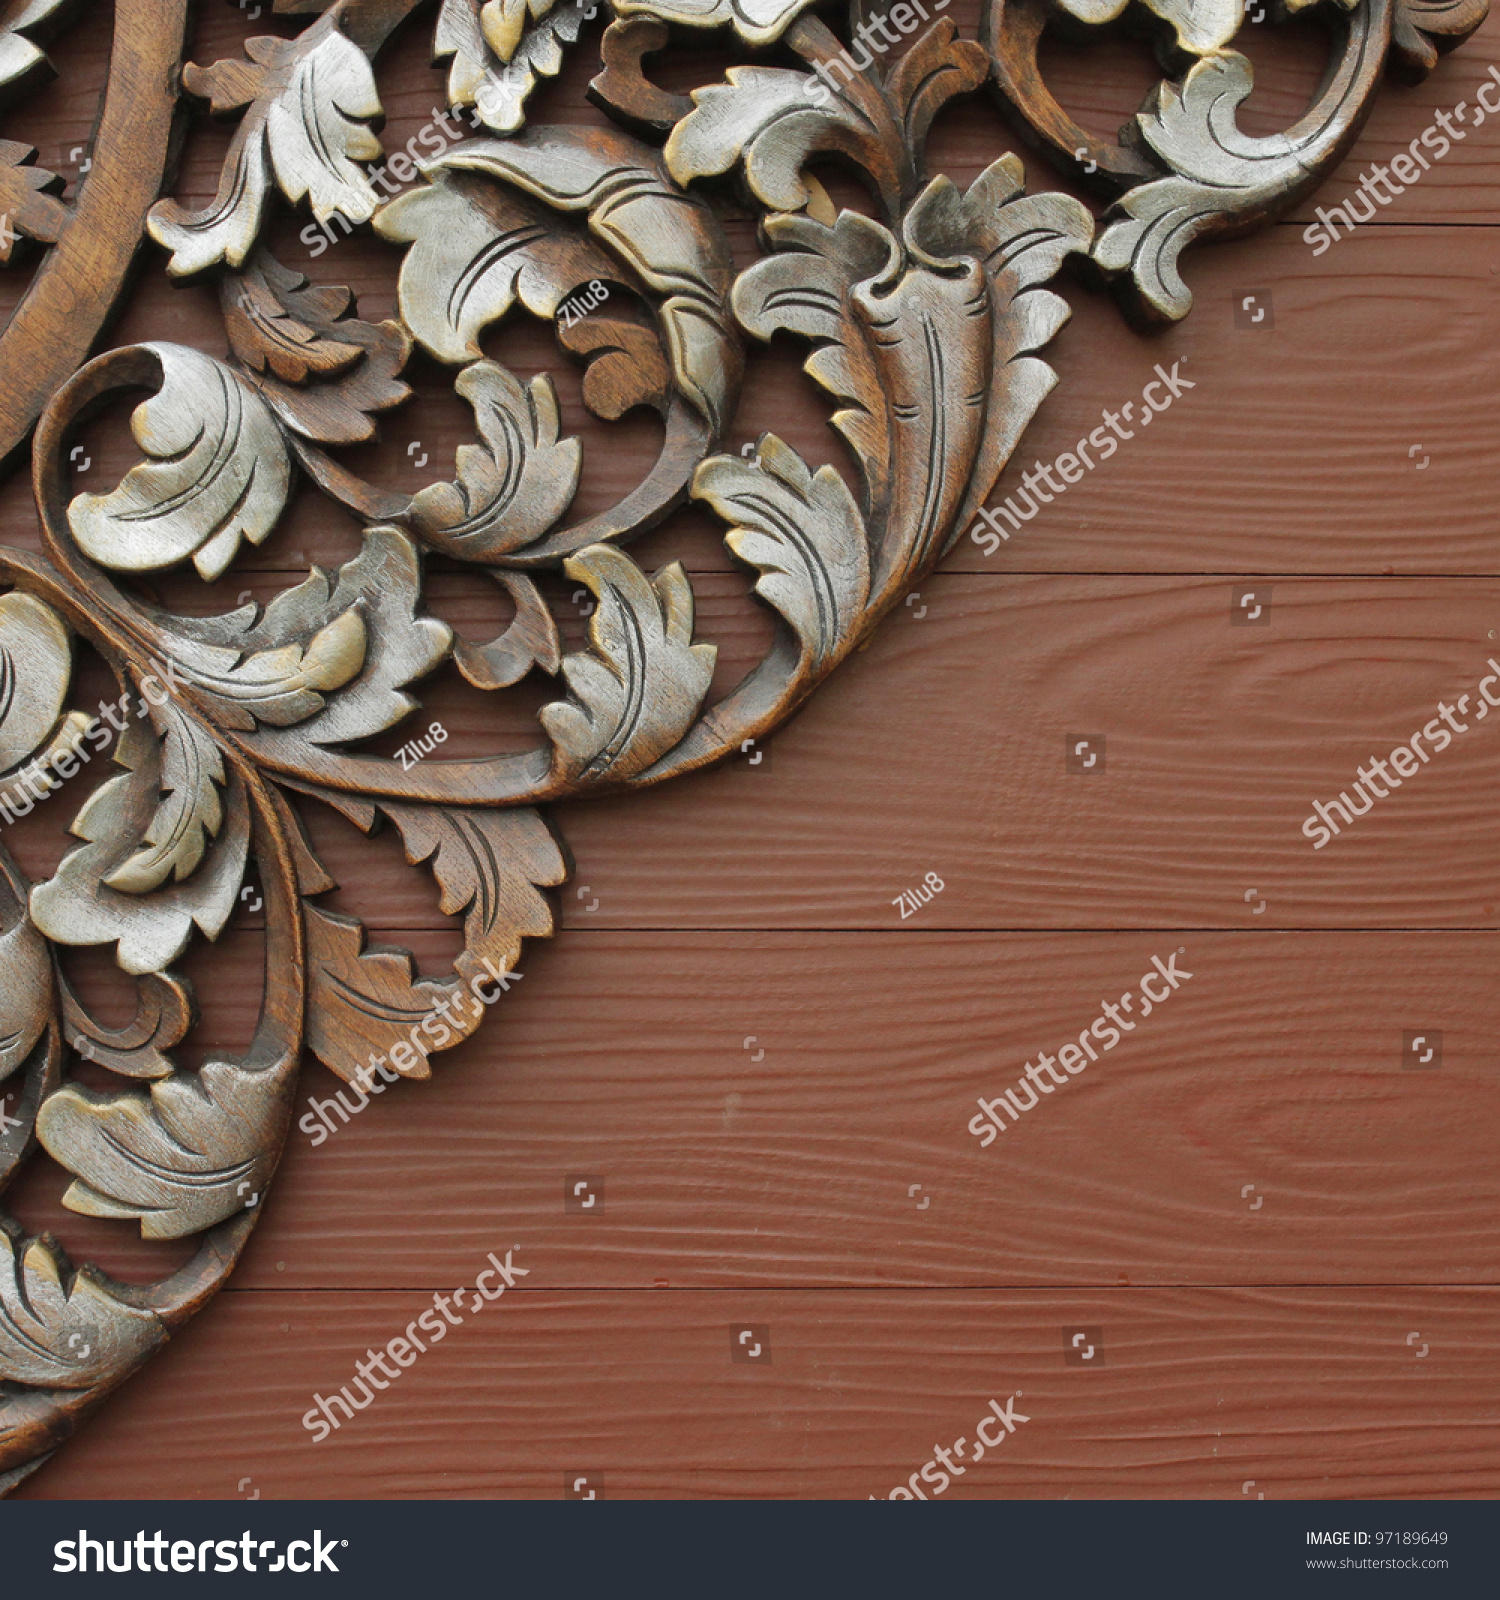 Wood carving patterns stock photo edit now 97189649 shutterstock